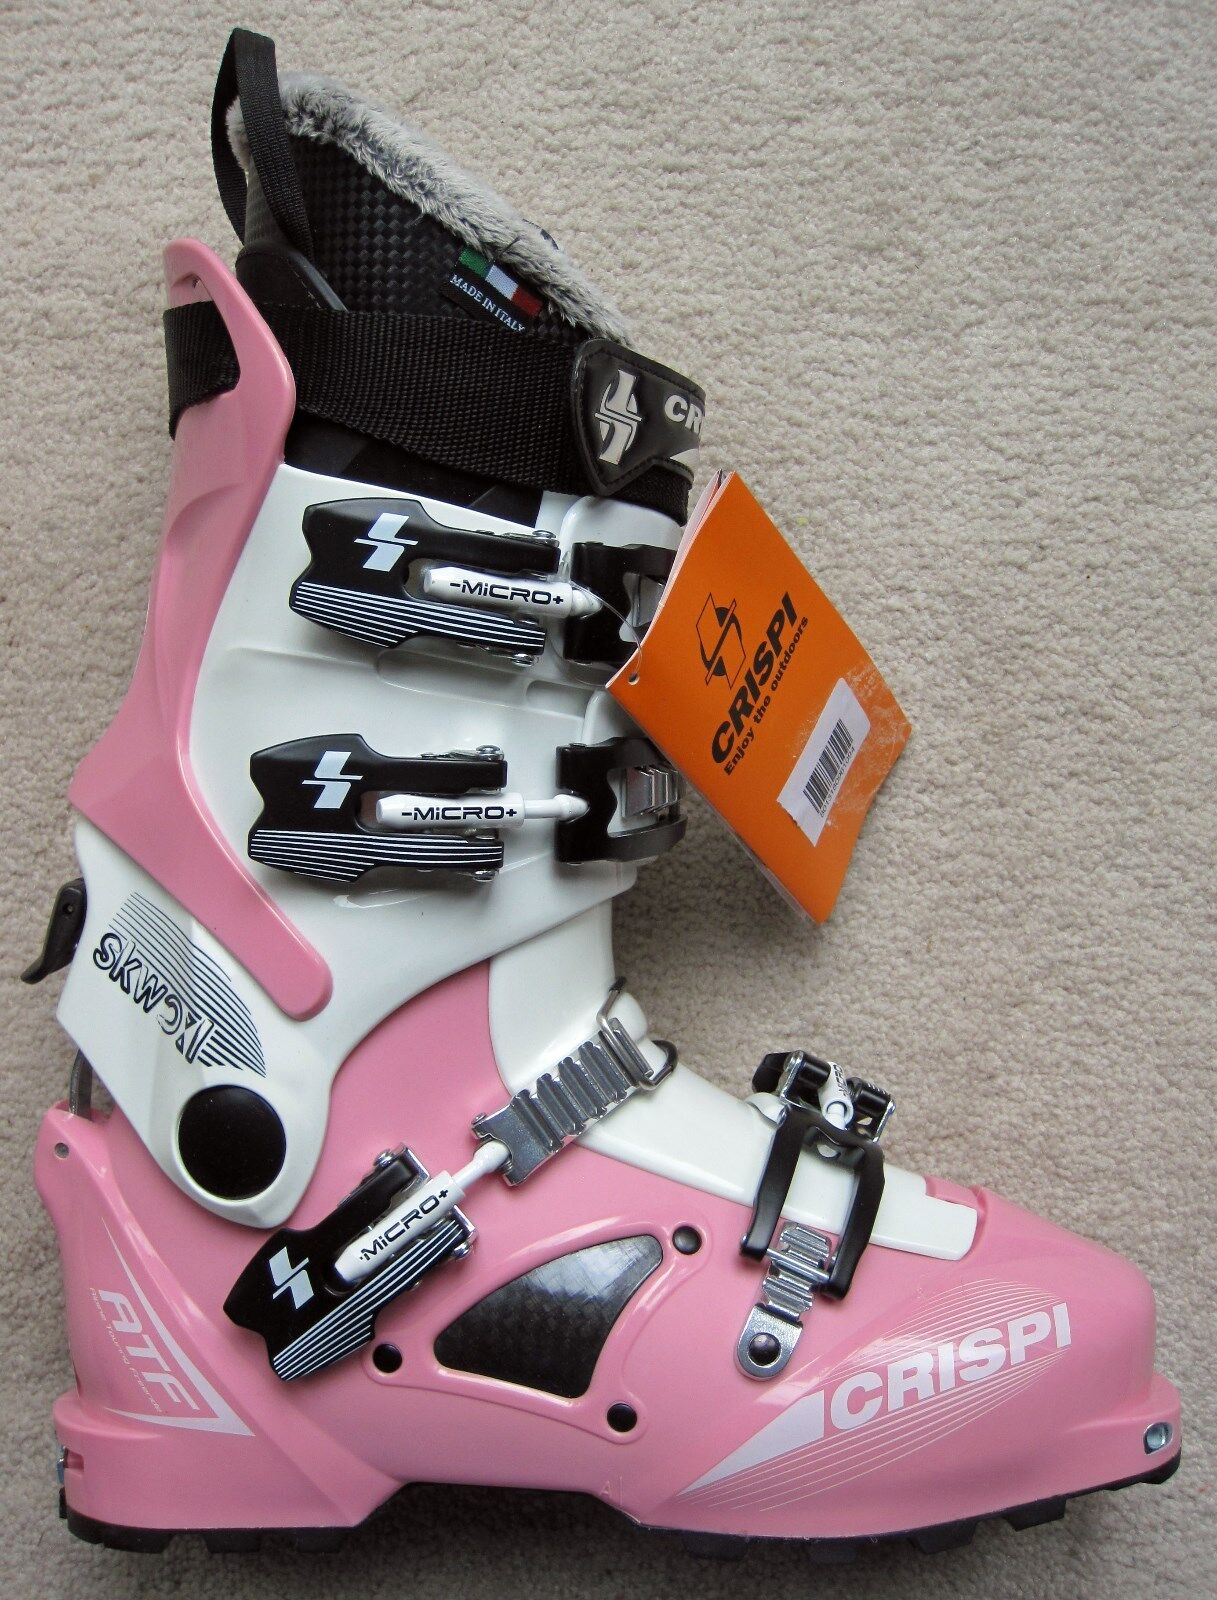 NEW CRISPI SKWO L 4 WHITE PINK ATF (ALPINE TOURING FREERIDE) BOOTS - 26.0